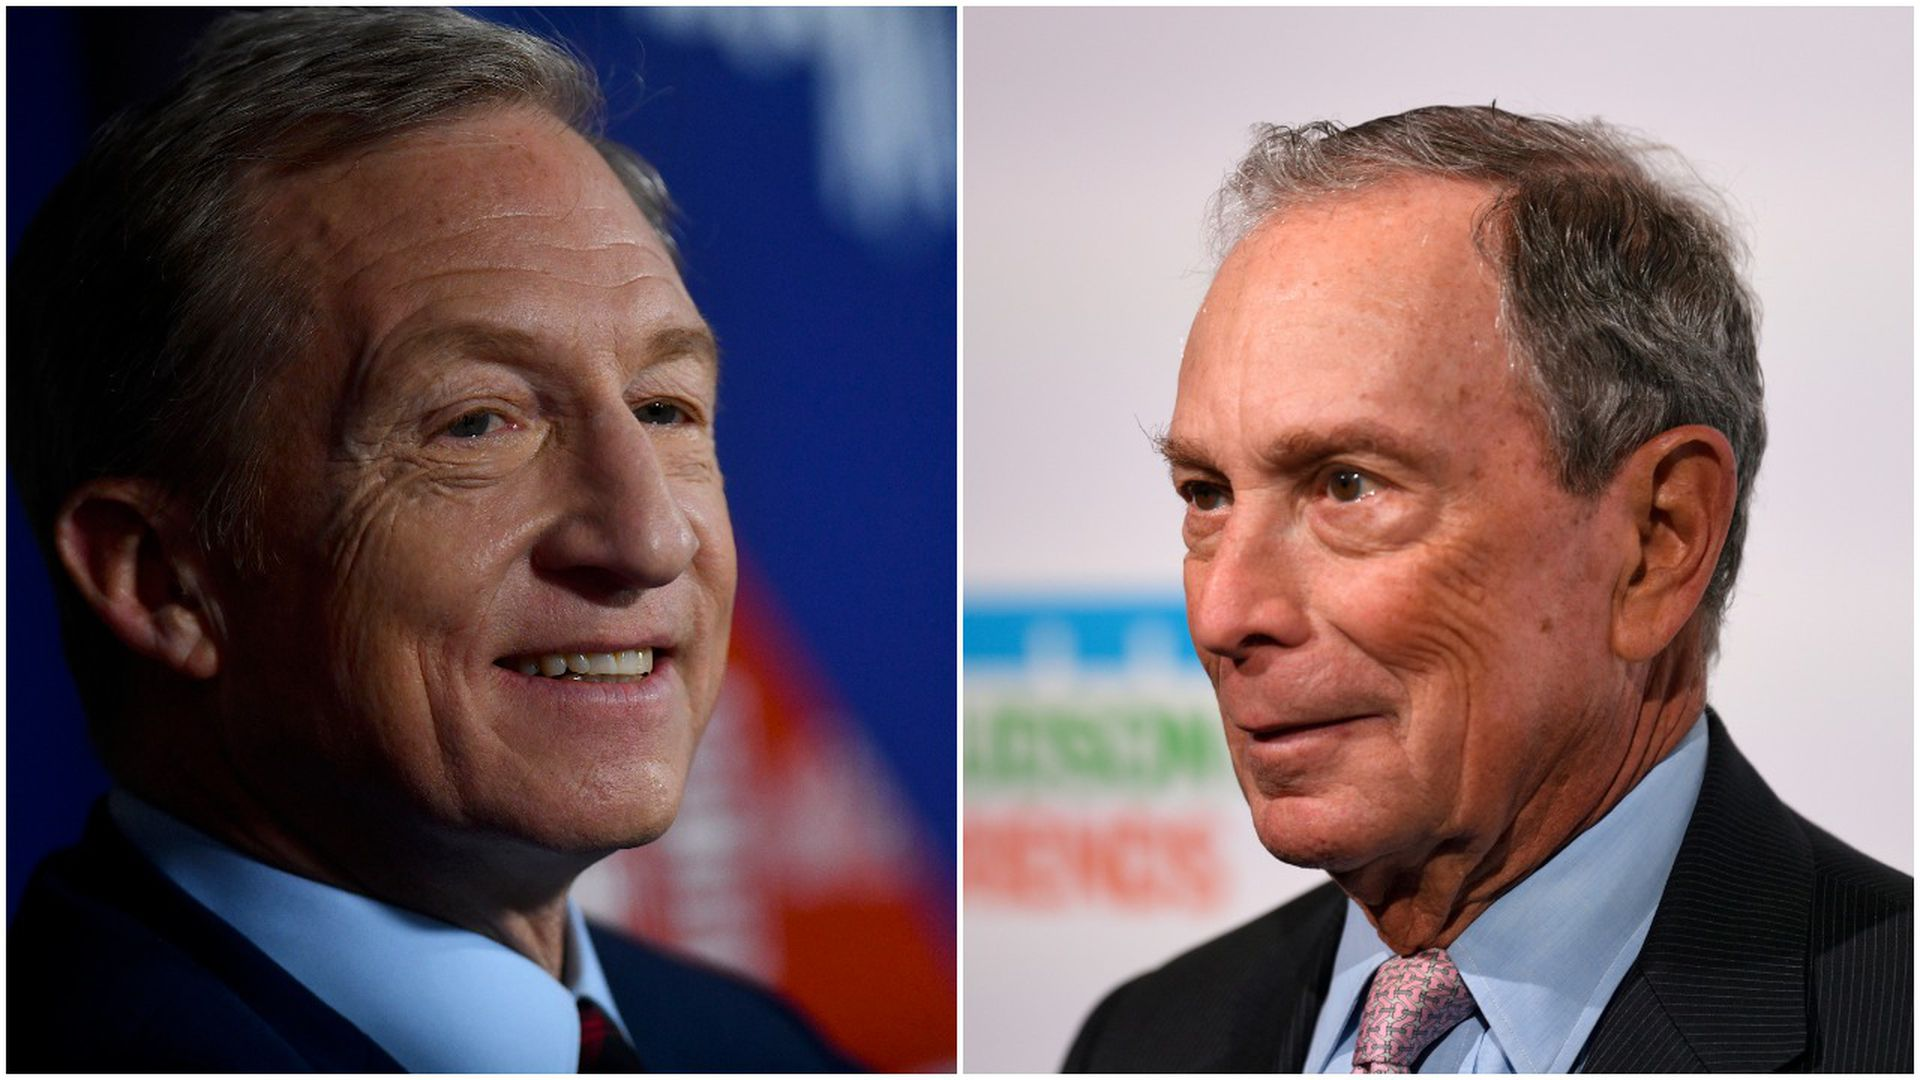 This image is a split-screen of Tom Steyer and Michael Bloomberg.